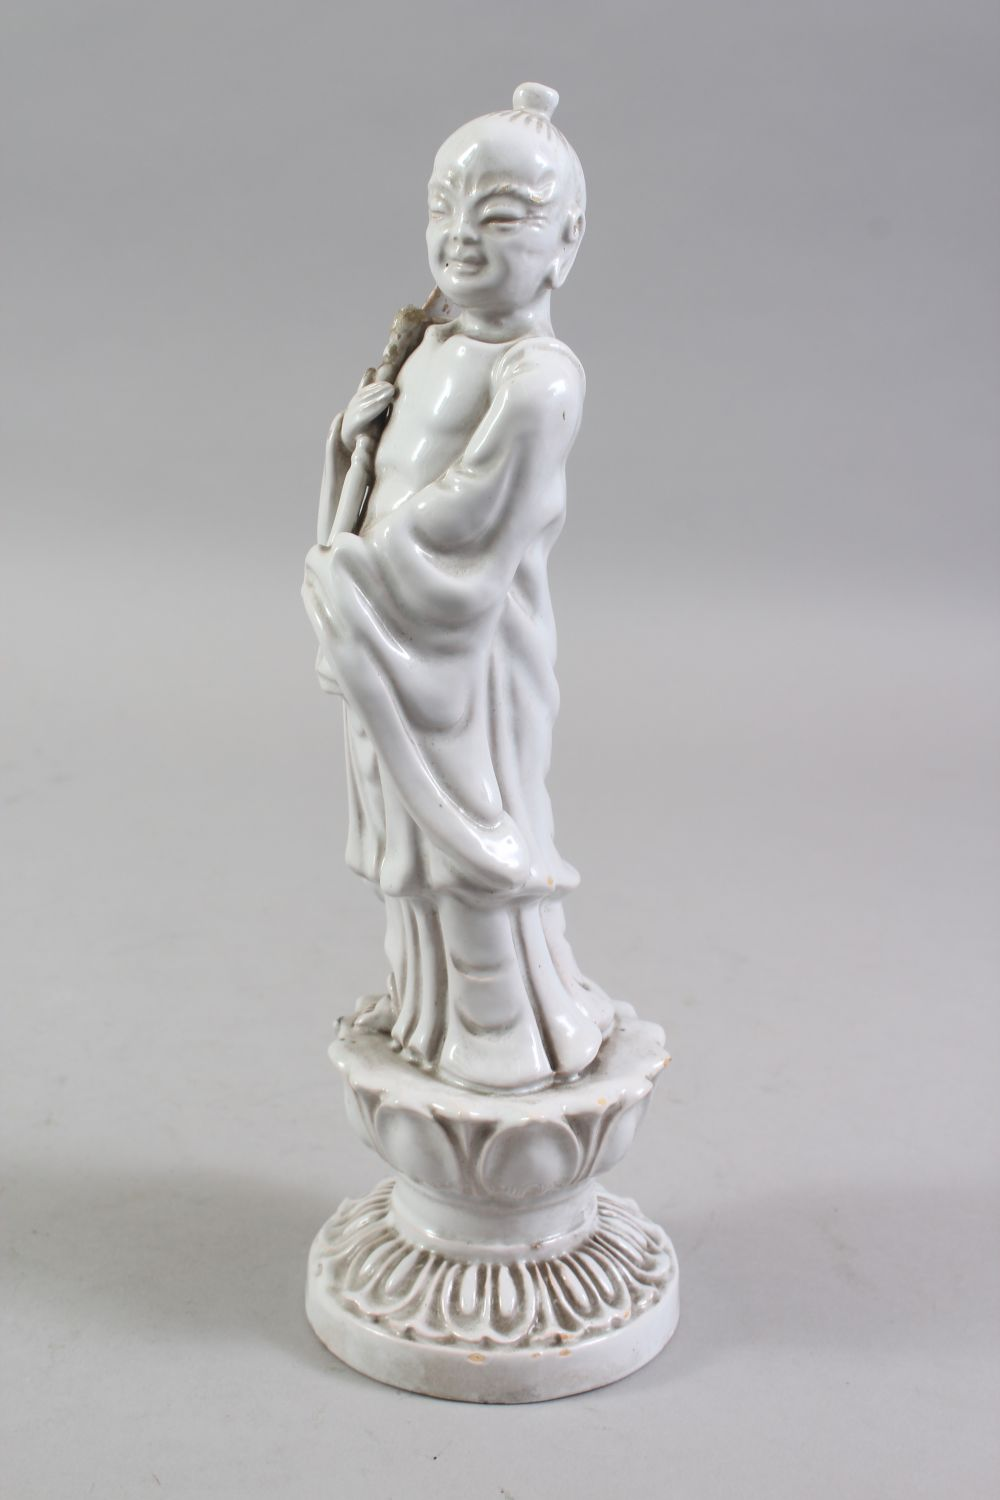 A CHINESE BLANC DE CHINE PORCELAIN FIGURE OF A BOY, standing holding a scepter, on a lotus base, - Image 4 of 6